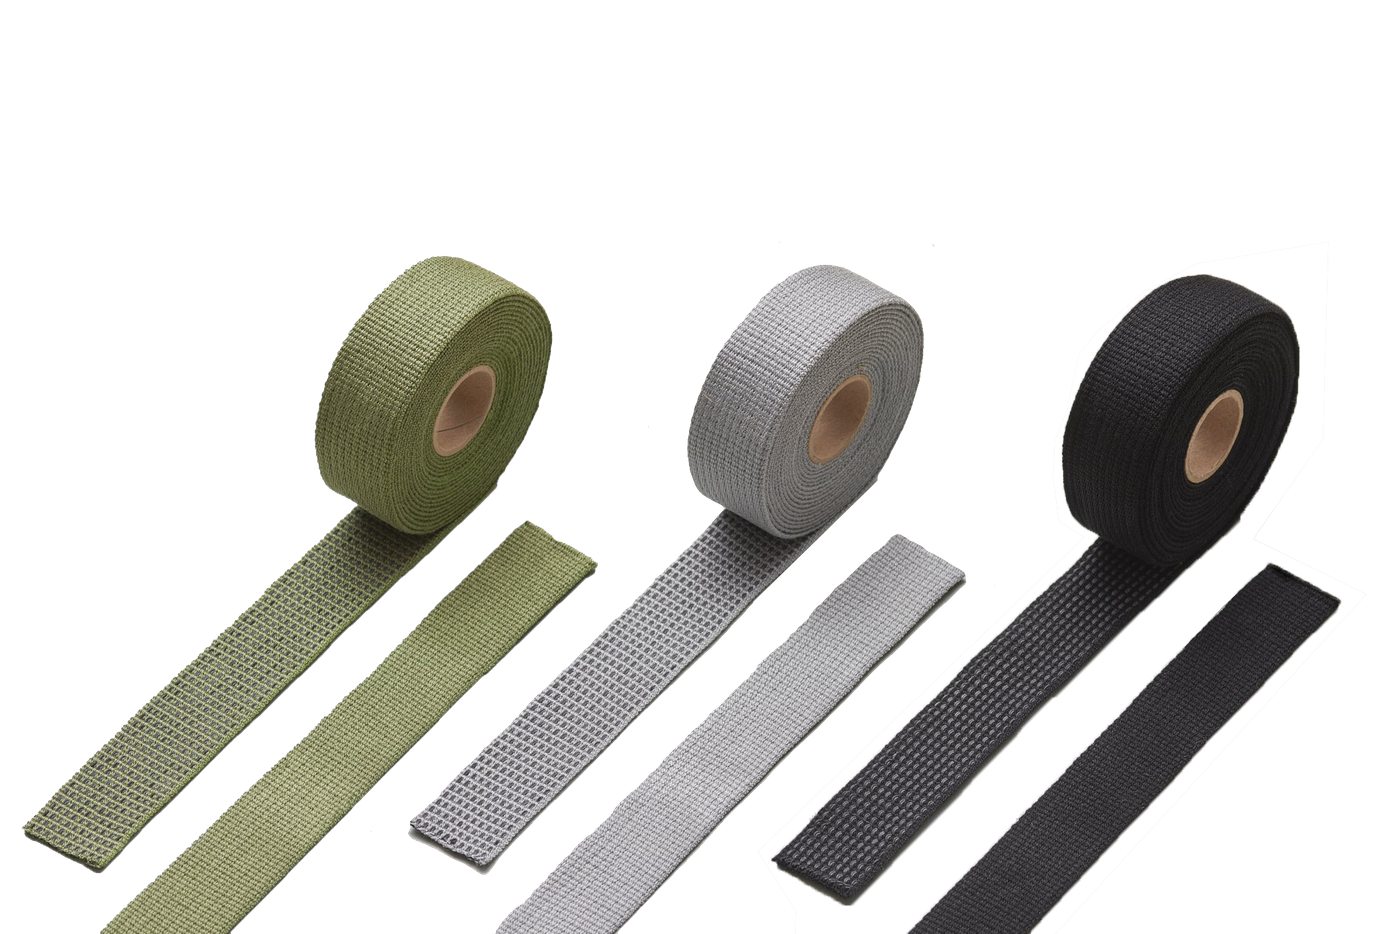 Grepp Makes Sustainable and Reusable Gripper Handlebar Tape